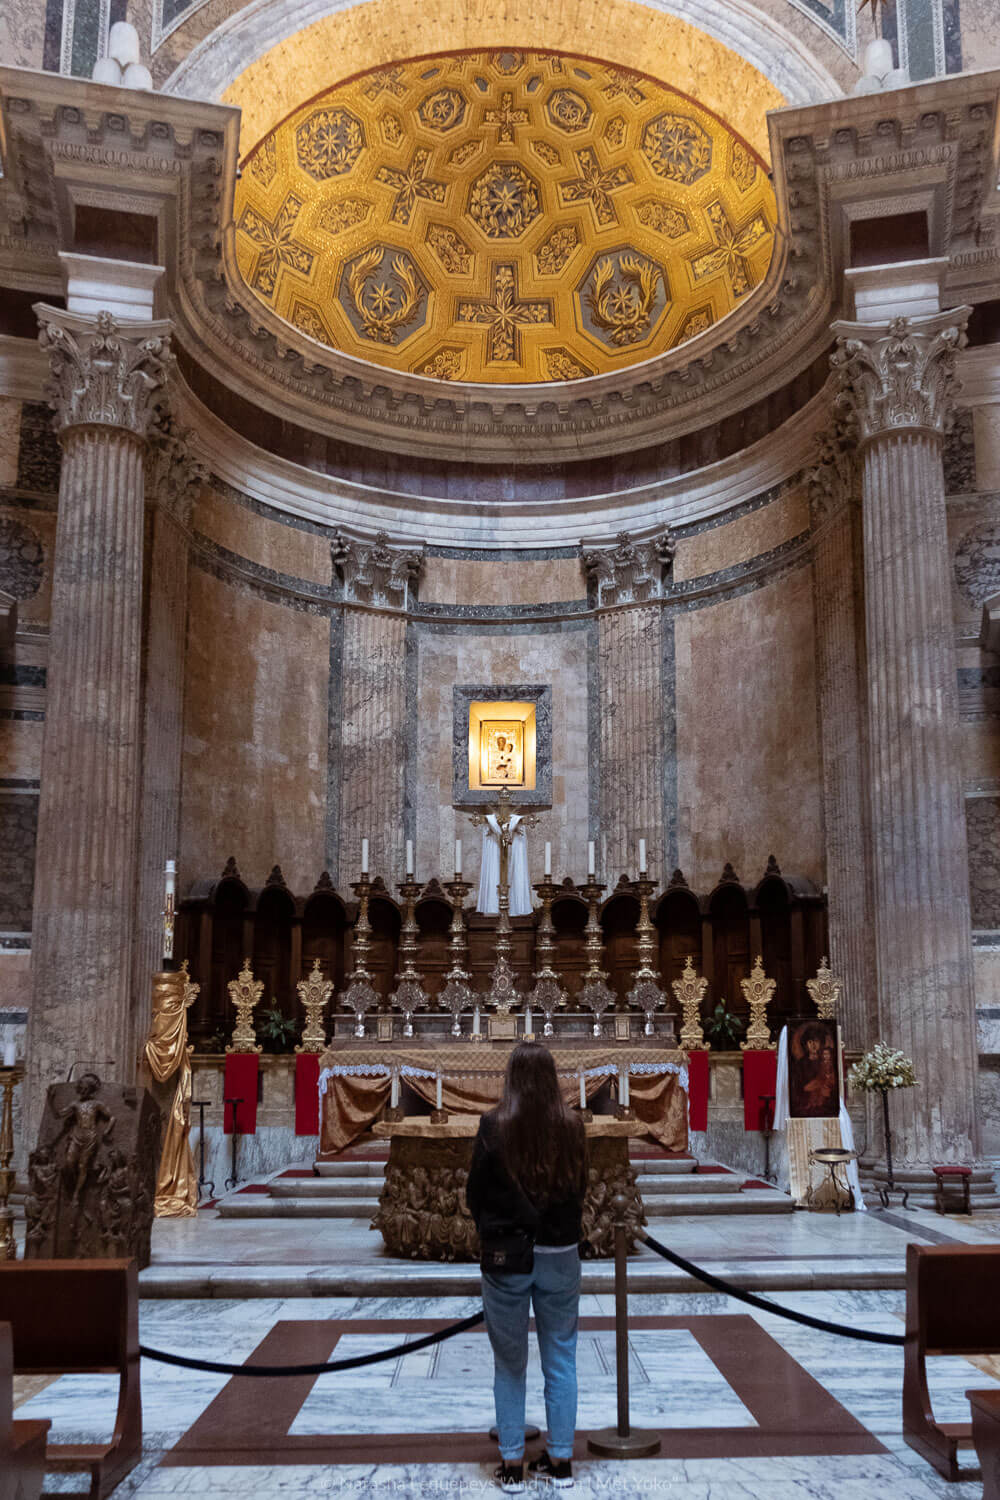 """The altar in the Pantheon in Rome, Italy. Travel photography and guide by © Natasha Lequepeys for """"And Then I Met Yoko"""". #rome #italy #travelblog #travelphotography"""